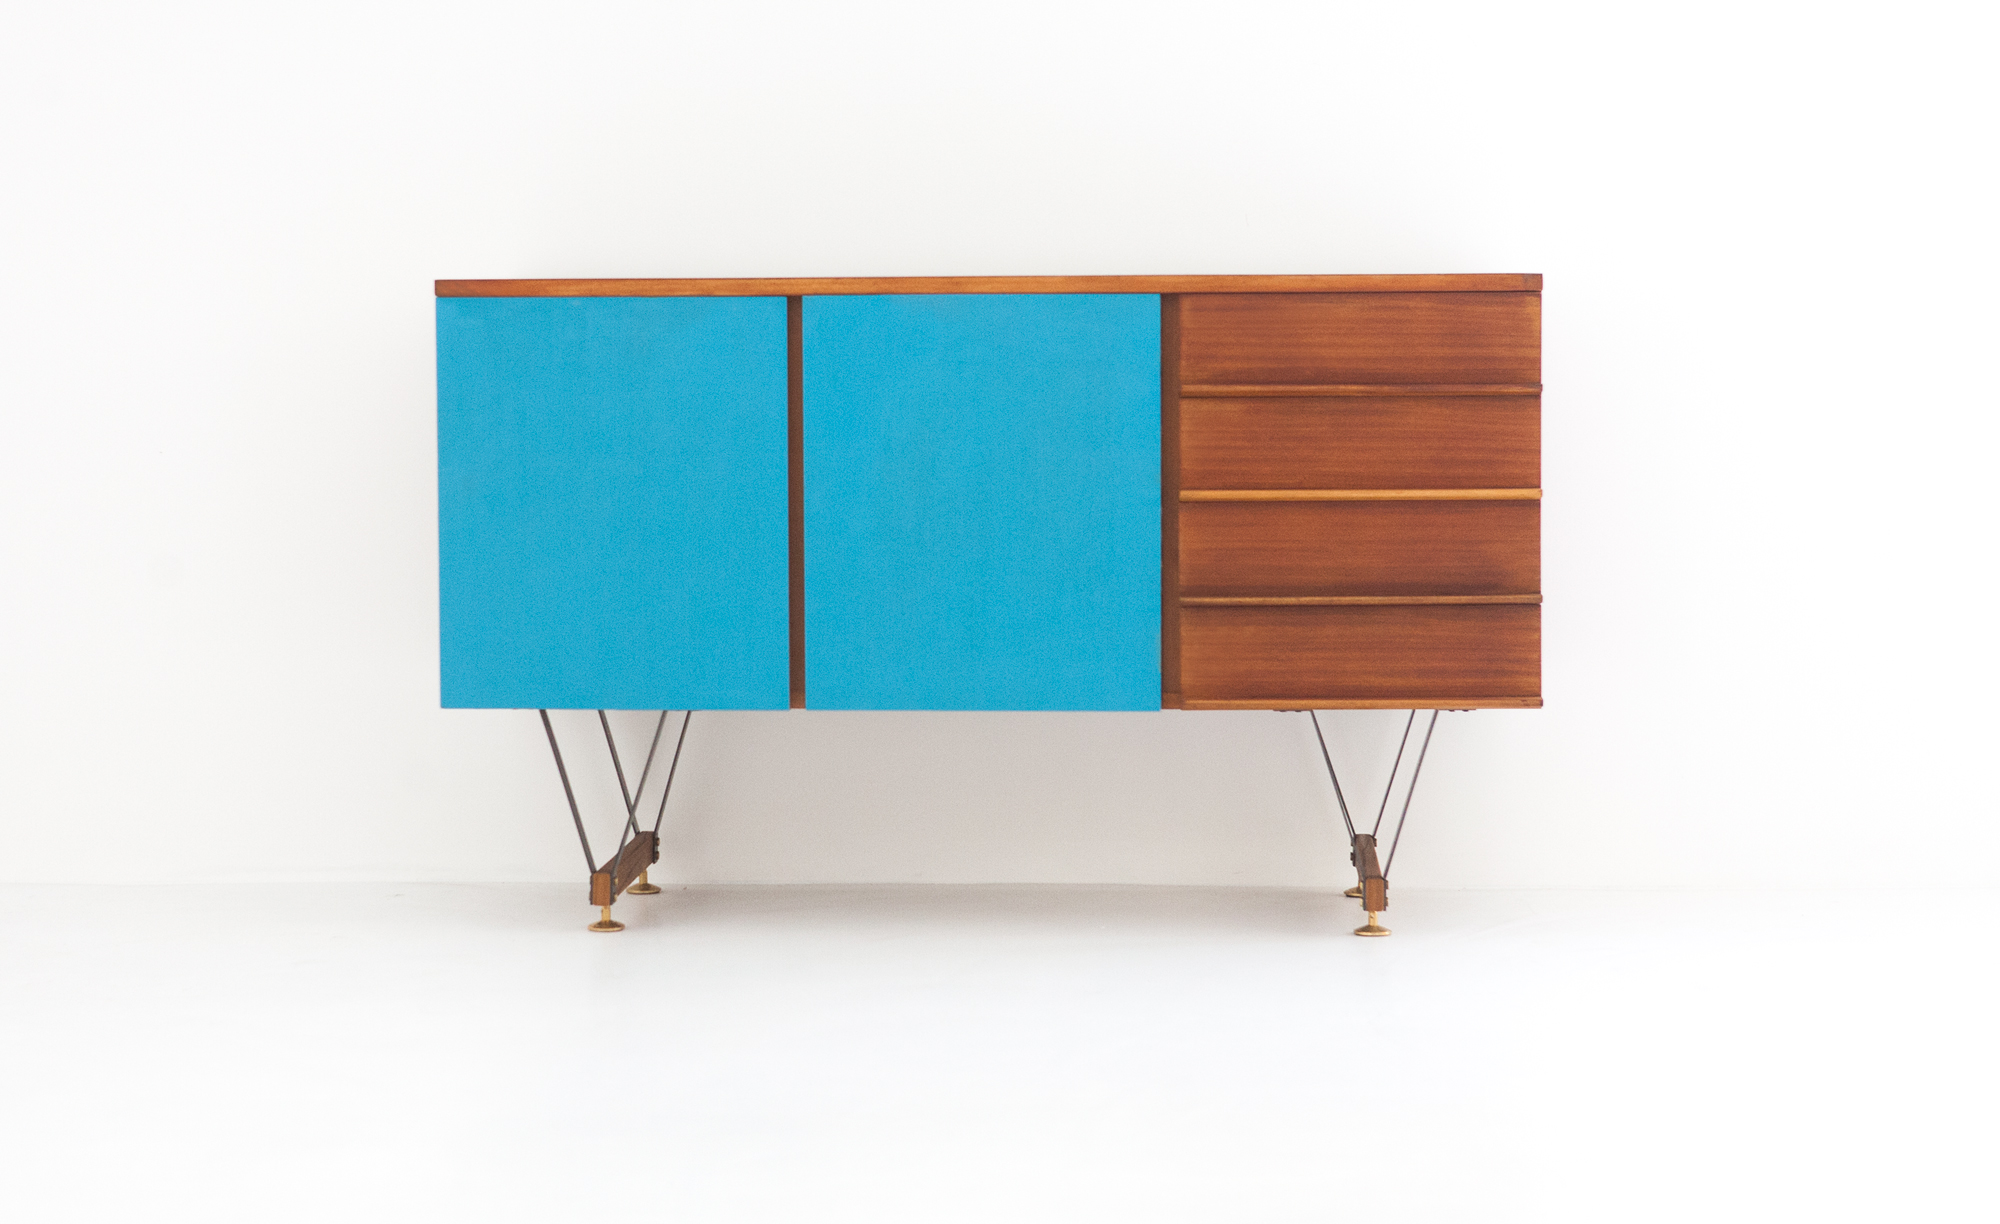 Sideboard 75 2 retro4m for Sideboard 2 m breit